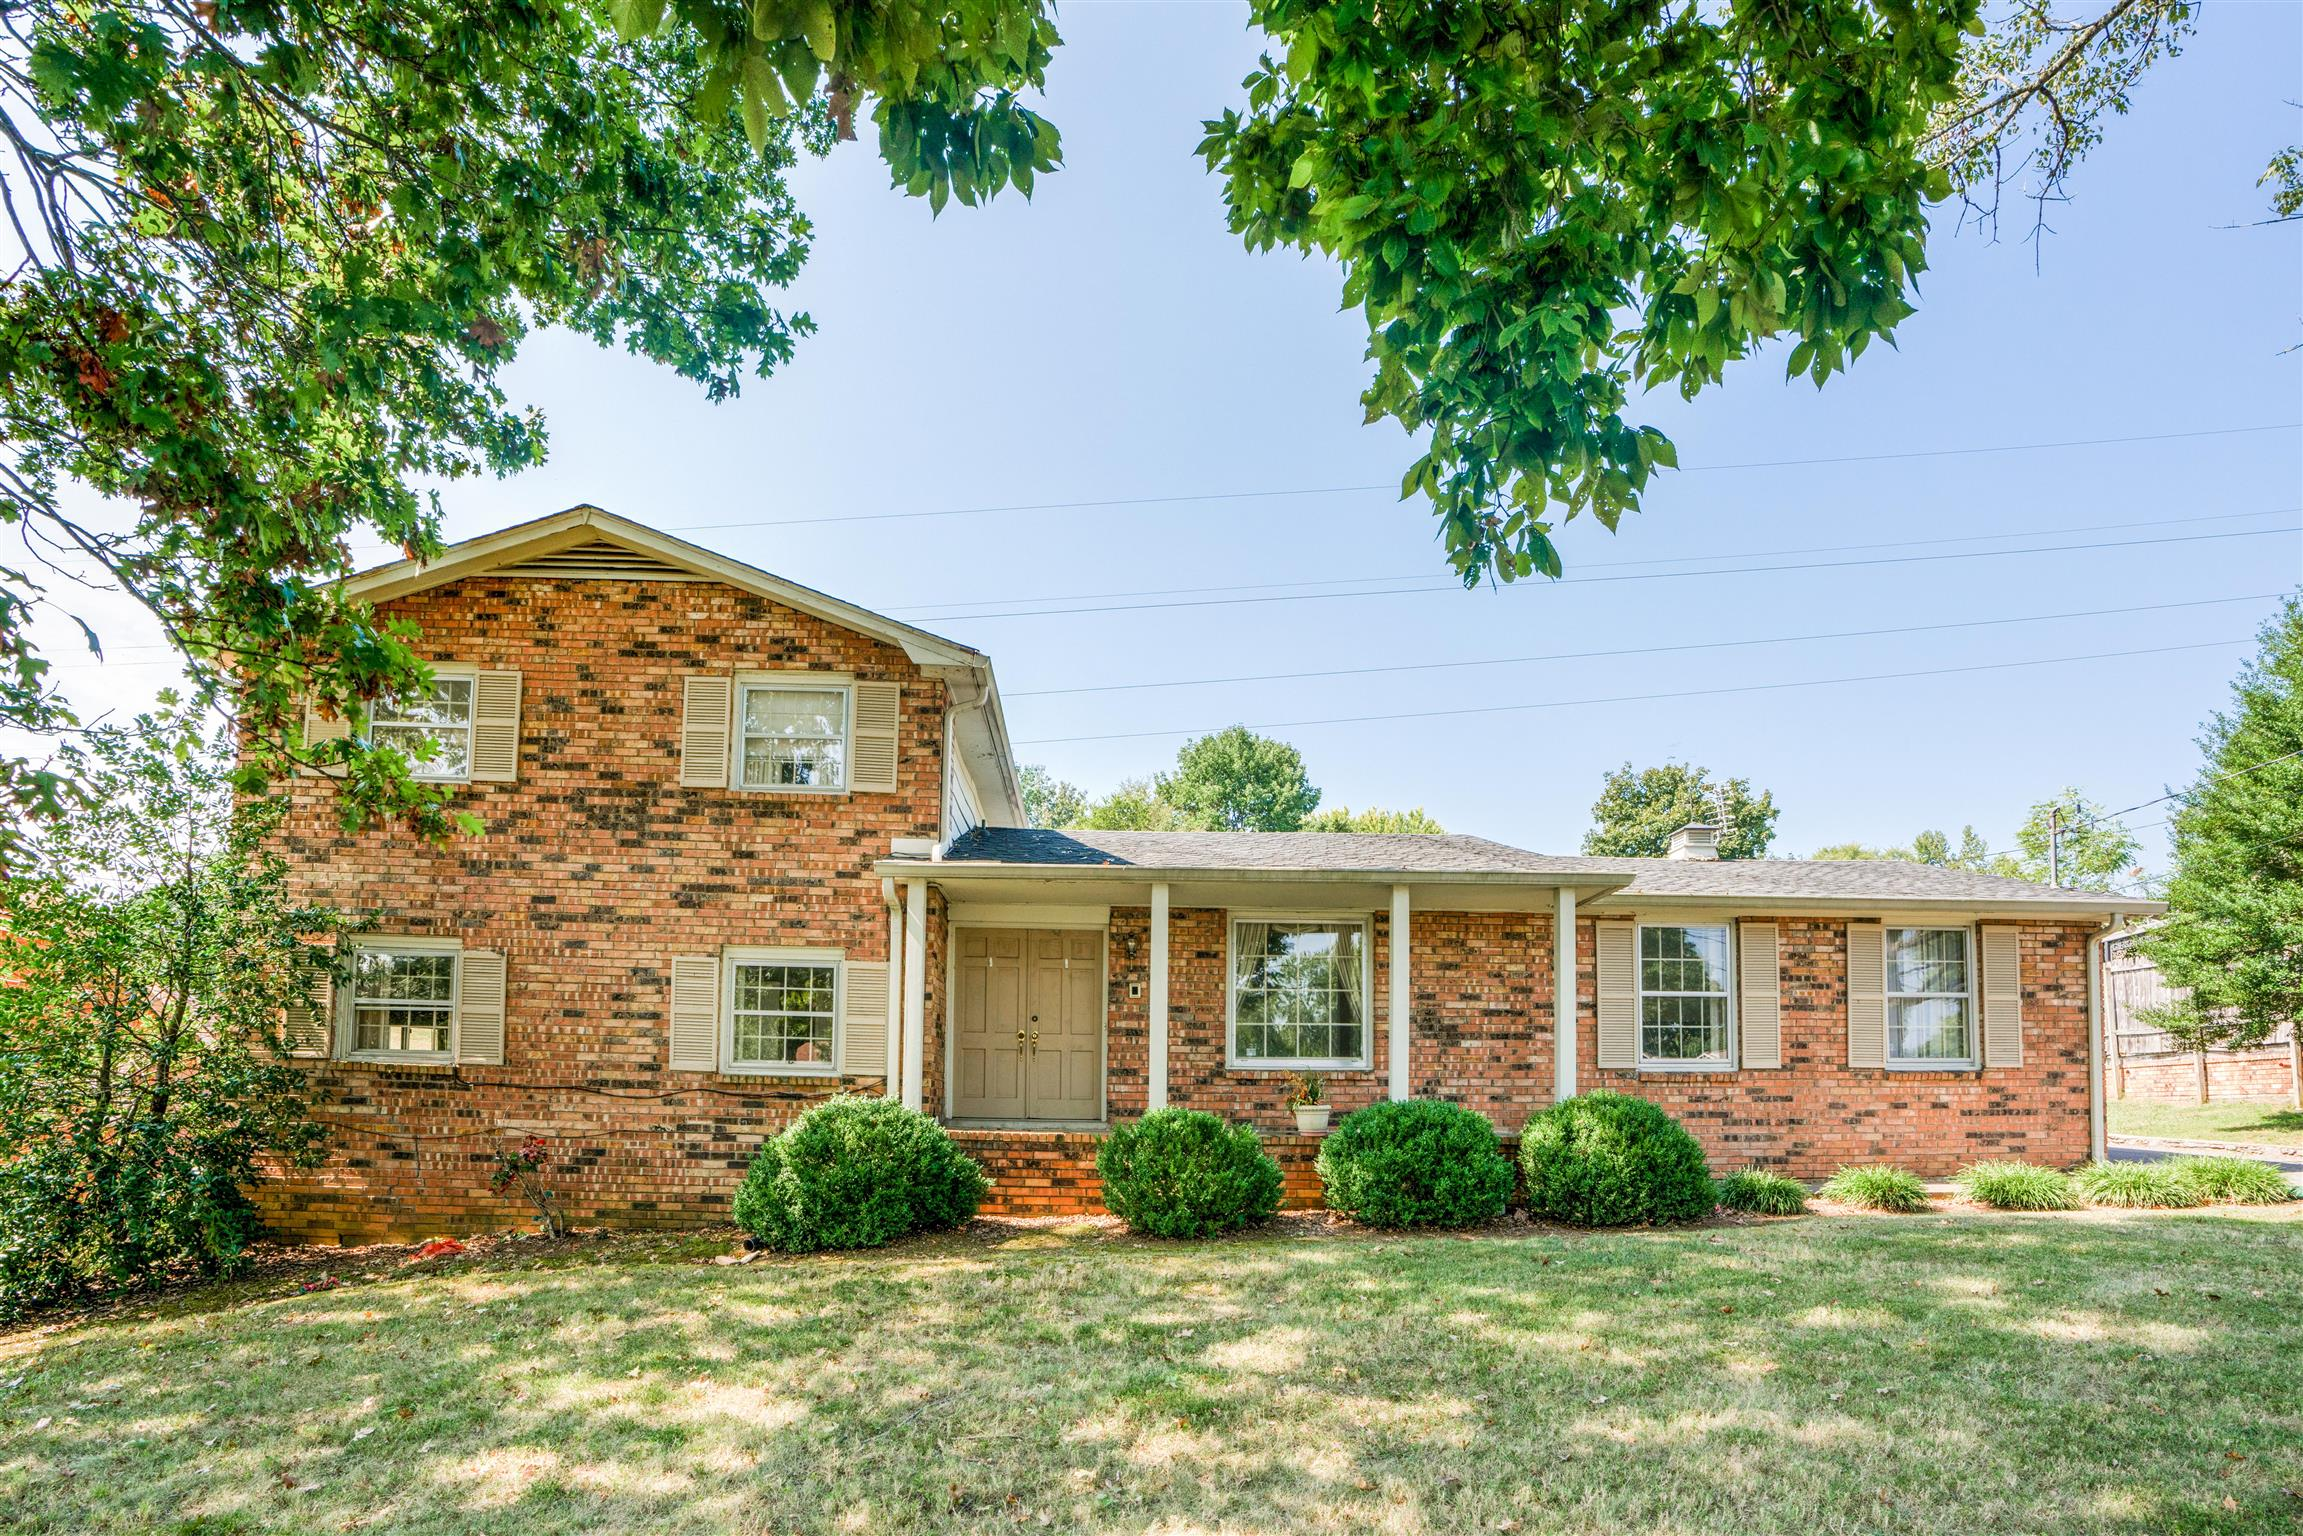 2935 Walnut Crest Dr, Nashville-Antioch in Davidson County County, TN 37013 Home for Sale